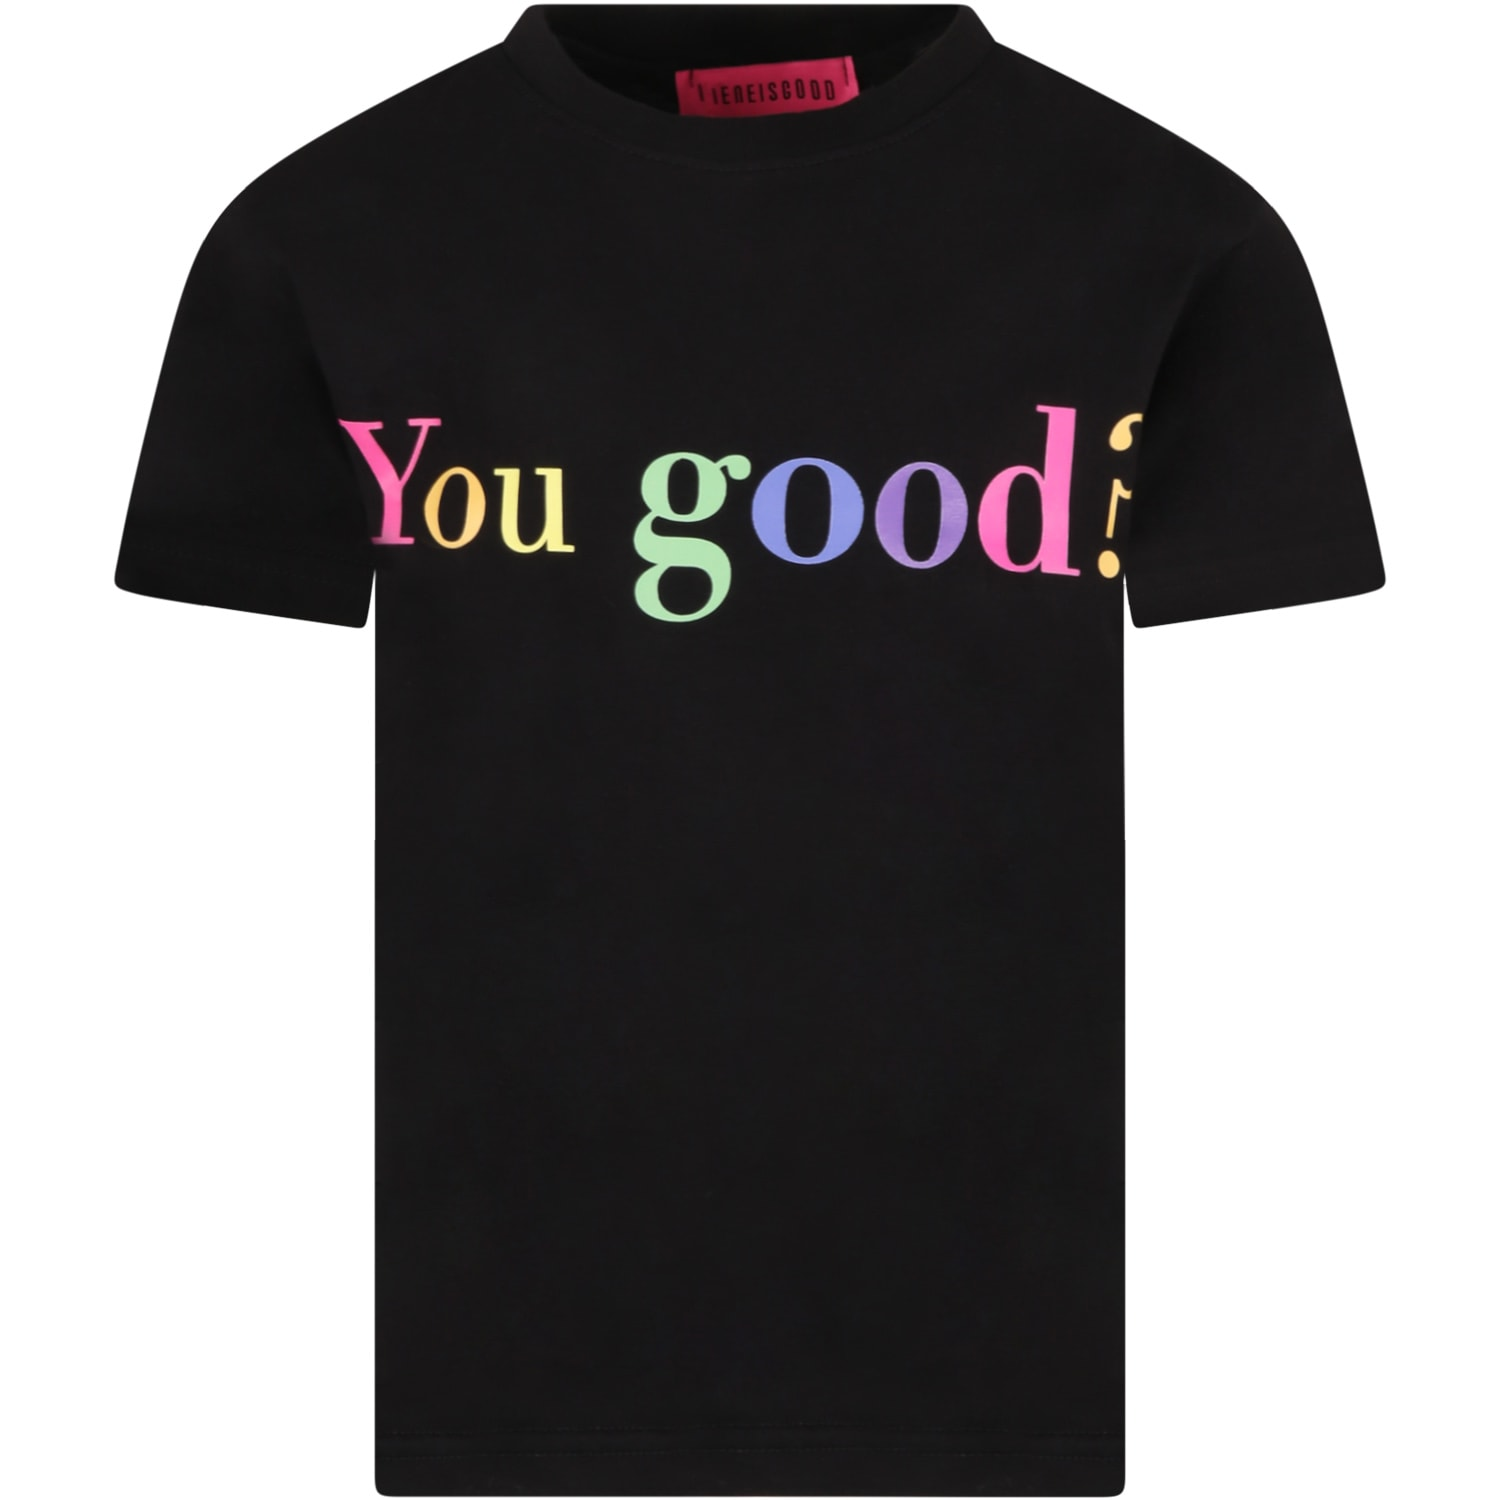 Black T-shirt For Girl With Writing